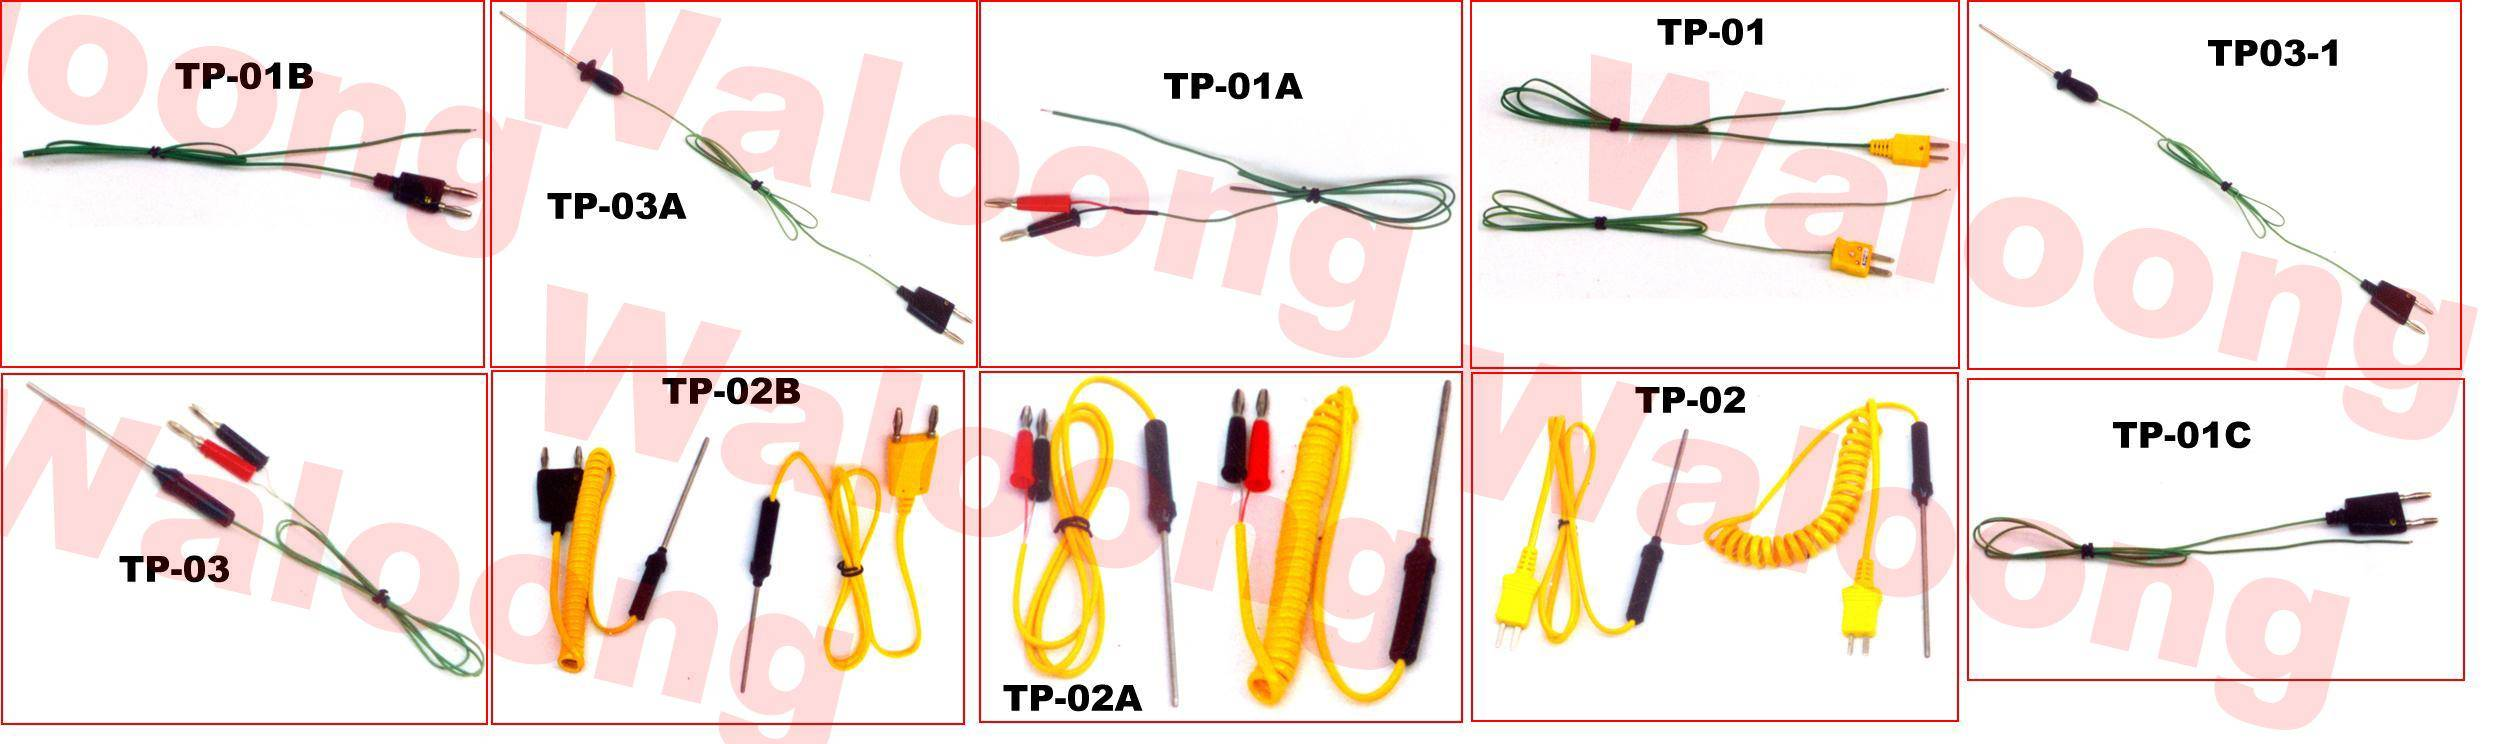 Sell special thermocouple-3